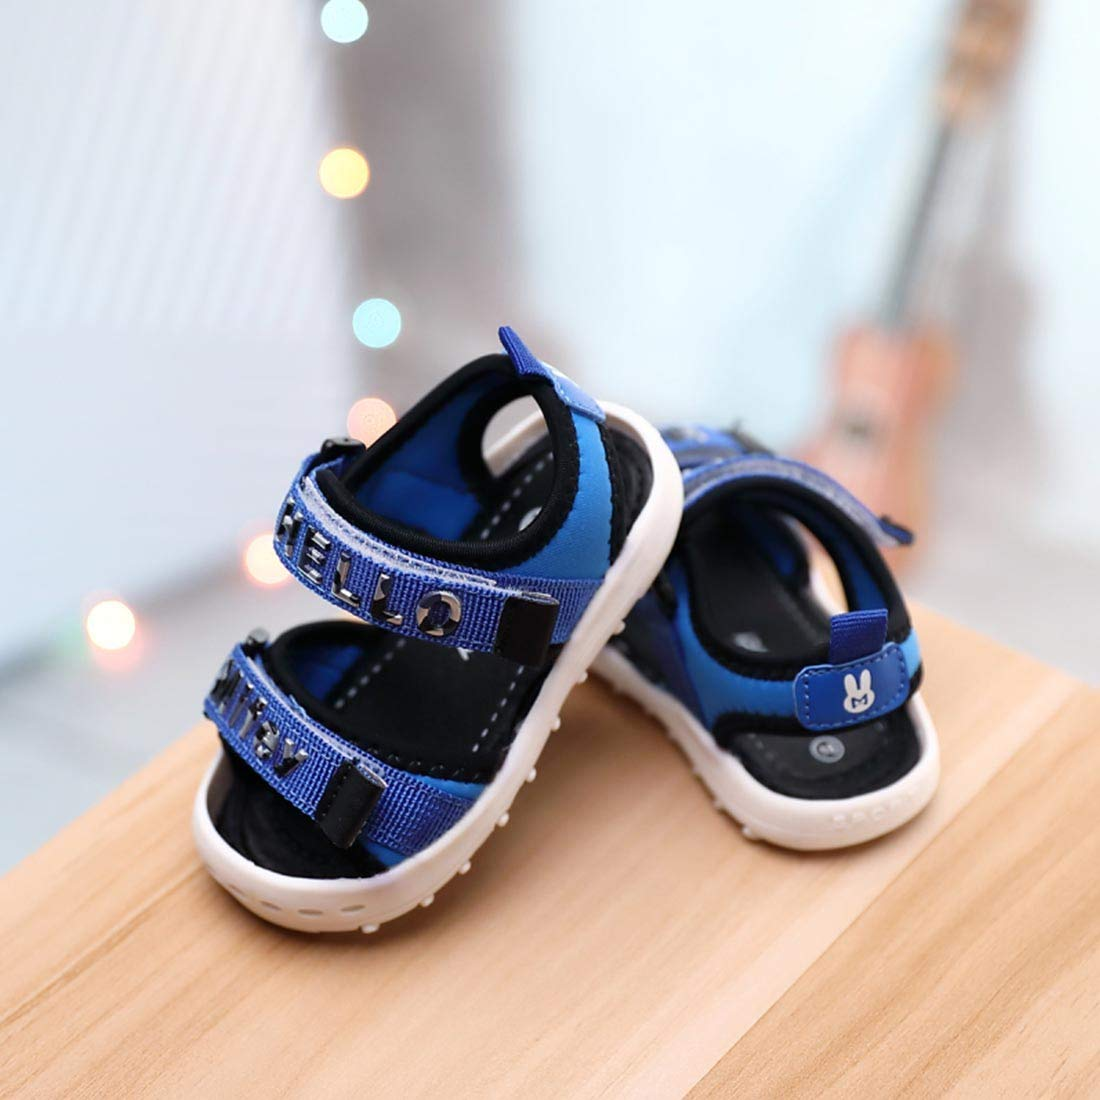 YIBLBOX Baby Boys Girls Athletic Outdoor Sandals Little Kids Water Beach Shoes